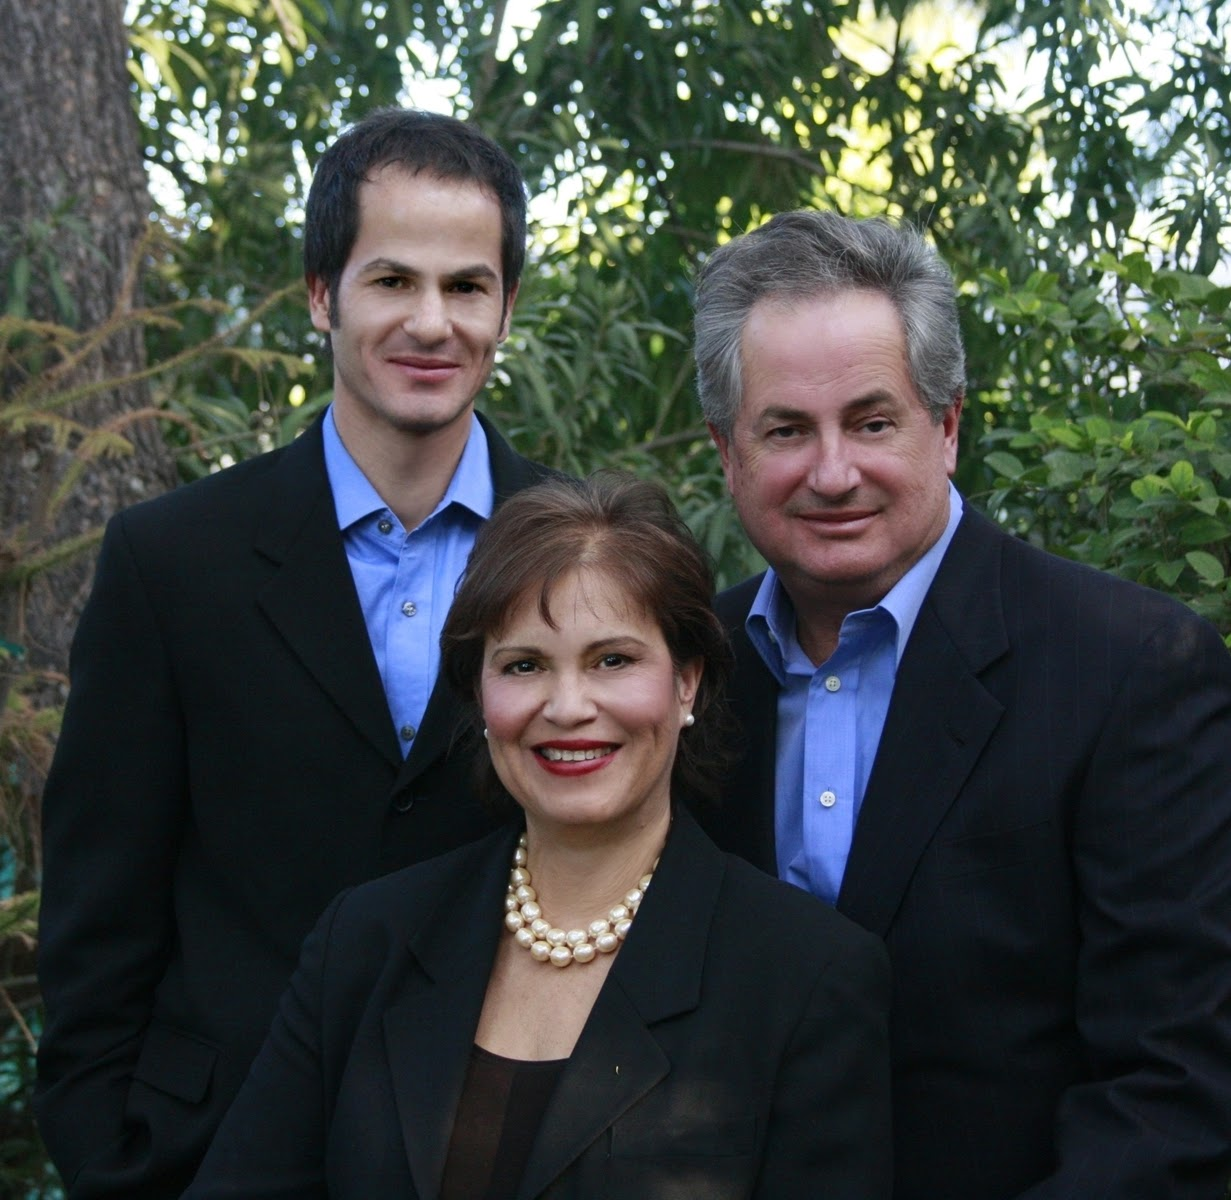 Rich, Gladys and Rich Jr. Kenney